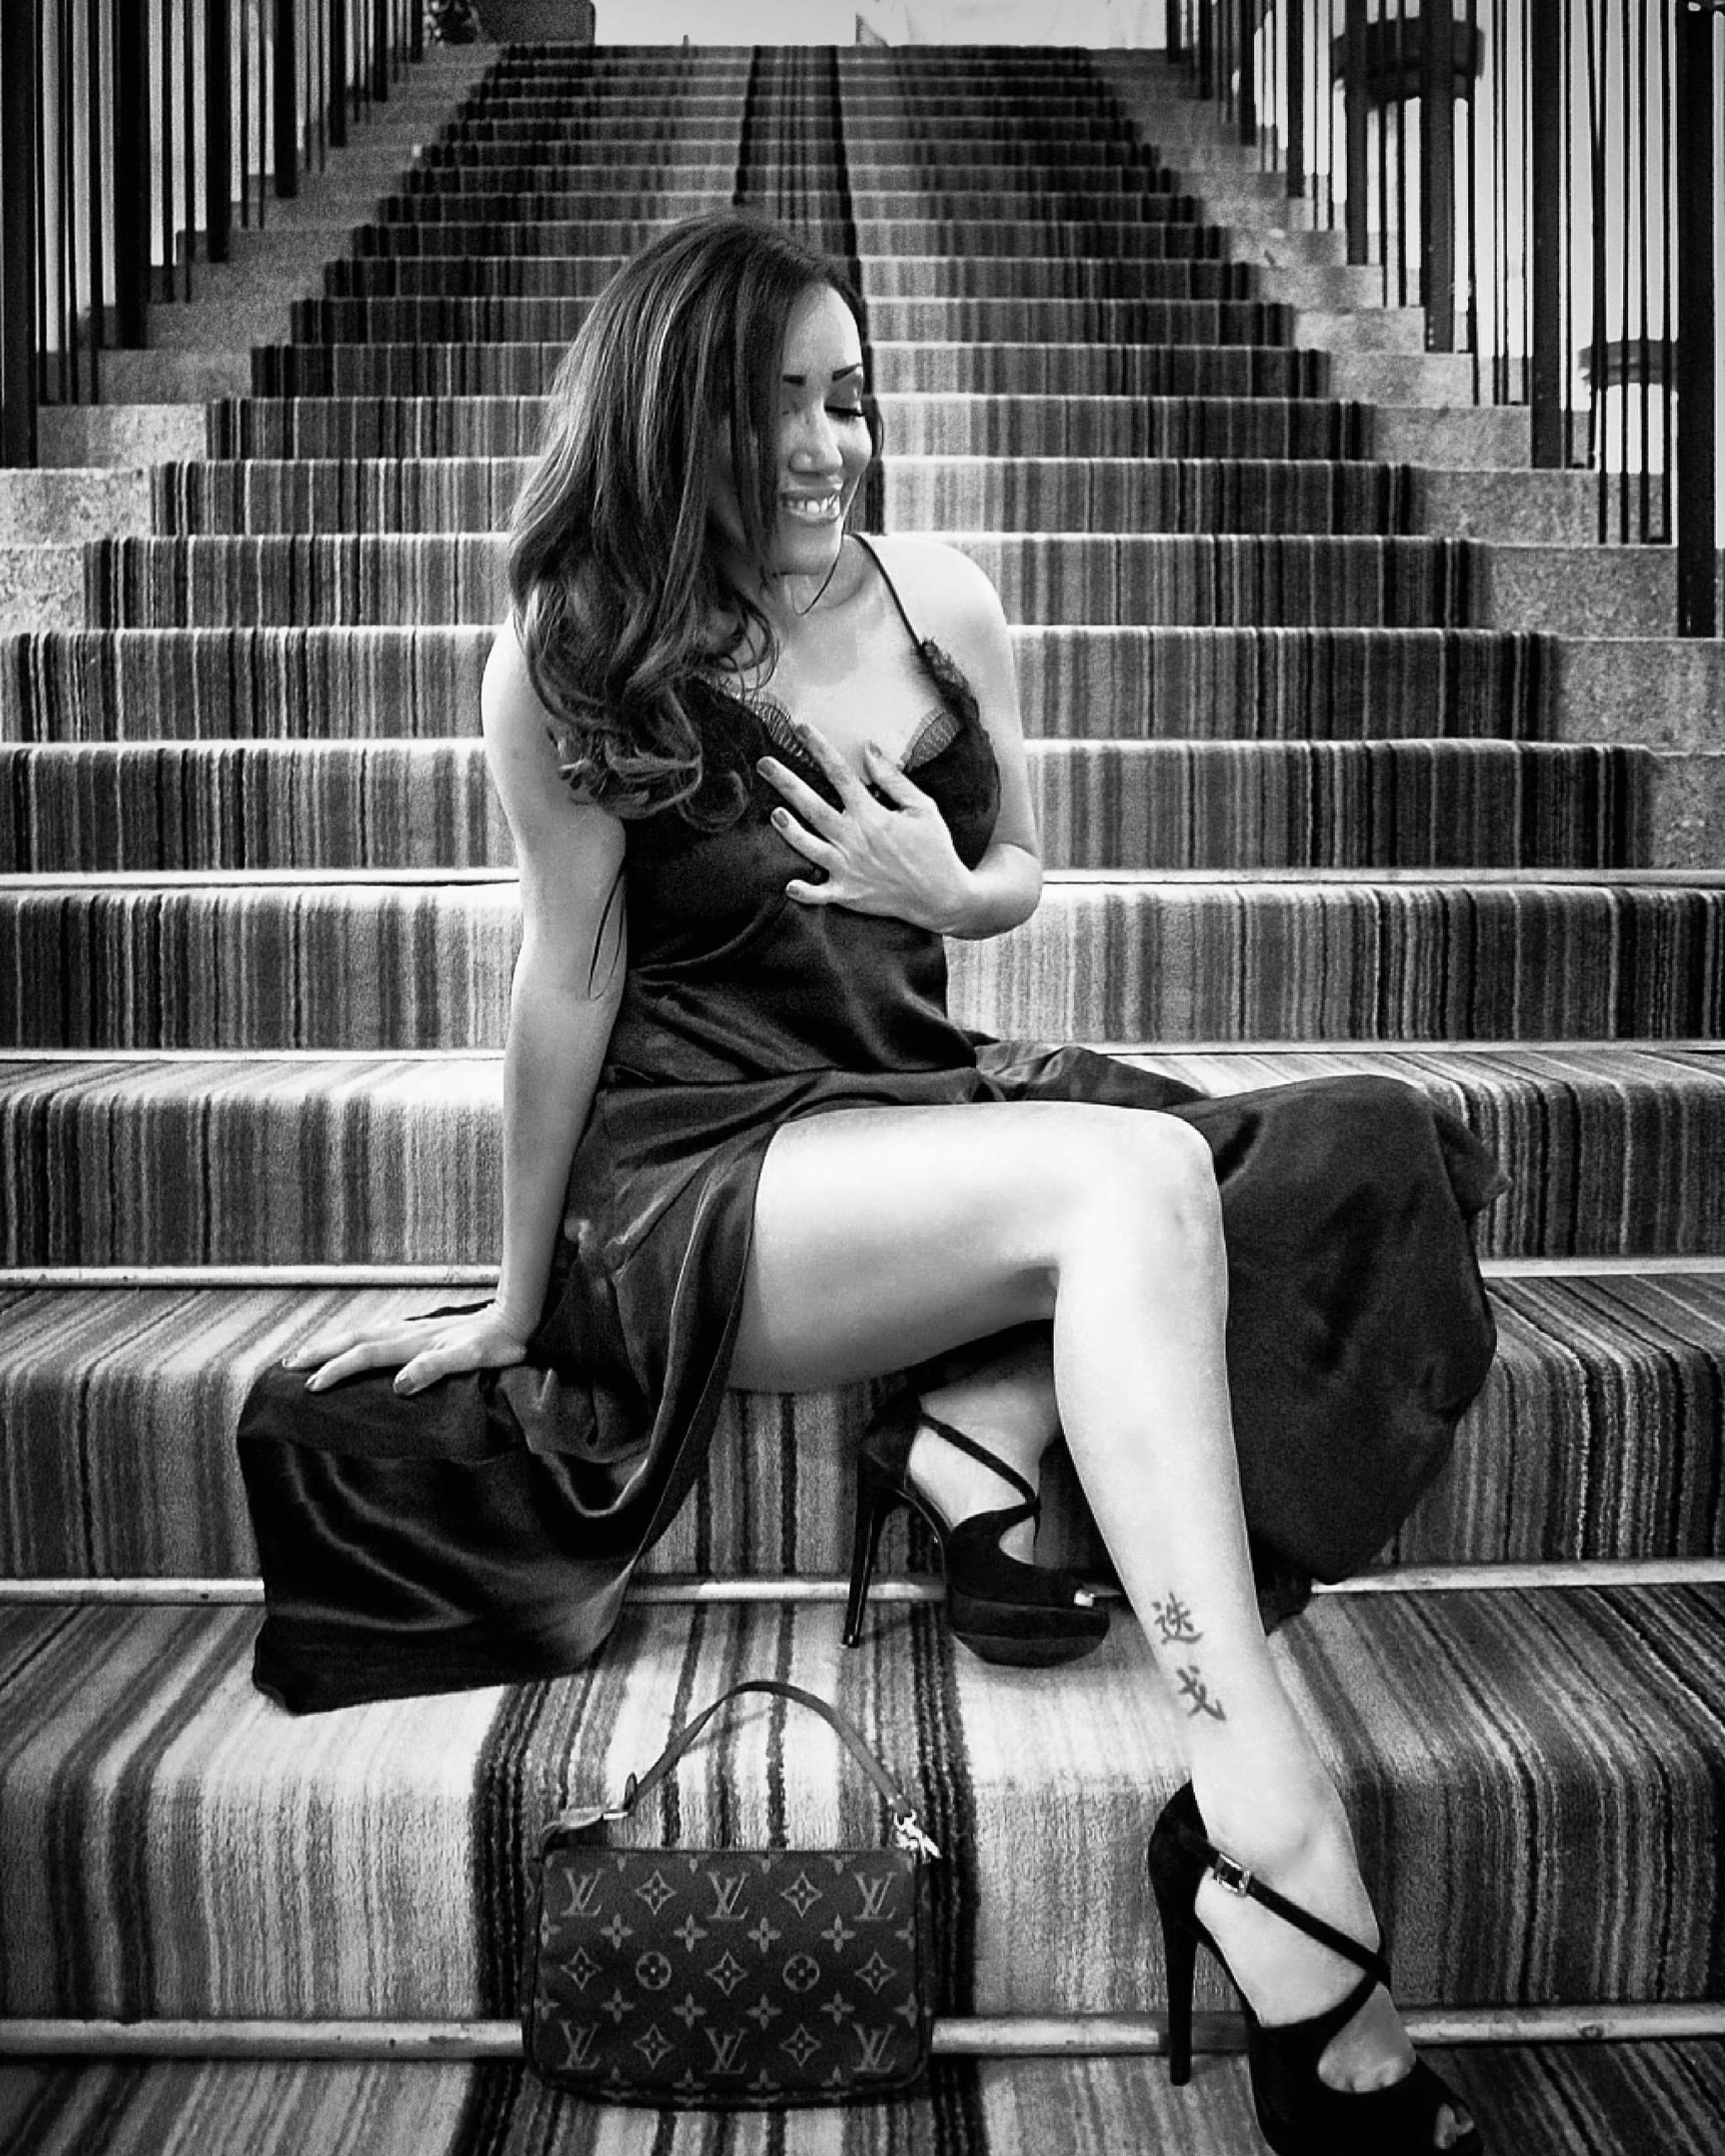 sitting, one person, black and white, women, adult, full length, monochrome photography, black, monochrome, staircase, young adult, lifestyles, fashion, footwear, architecture, photo shoot, female, clothing, person, white, hairstyle, long hair, steps and staircases, seat, portrait, leisure activity, casual clothing, relaxation, emotion, looking, human leg, indoors